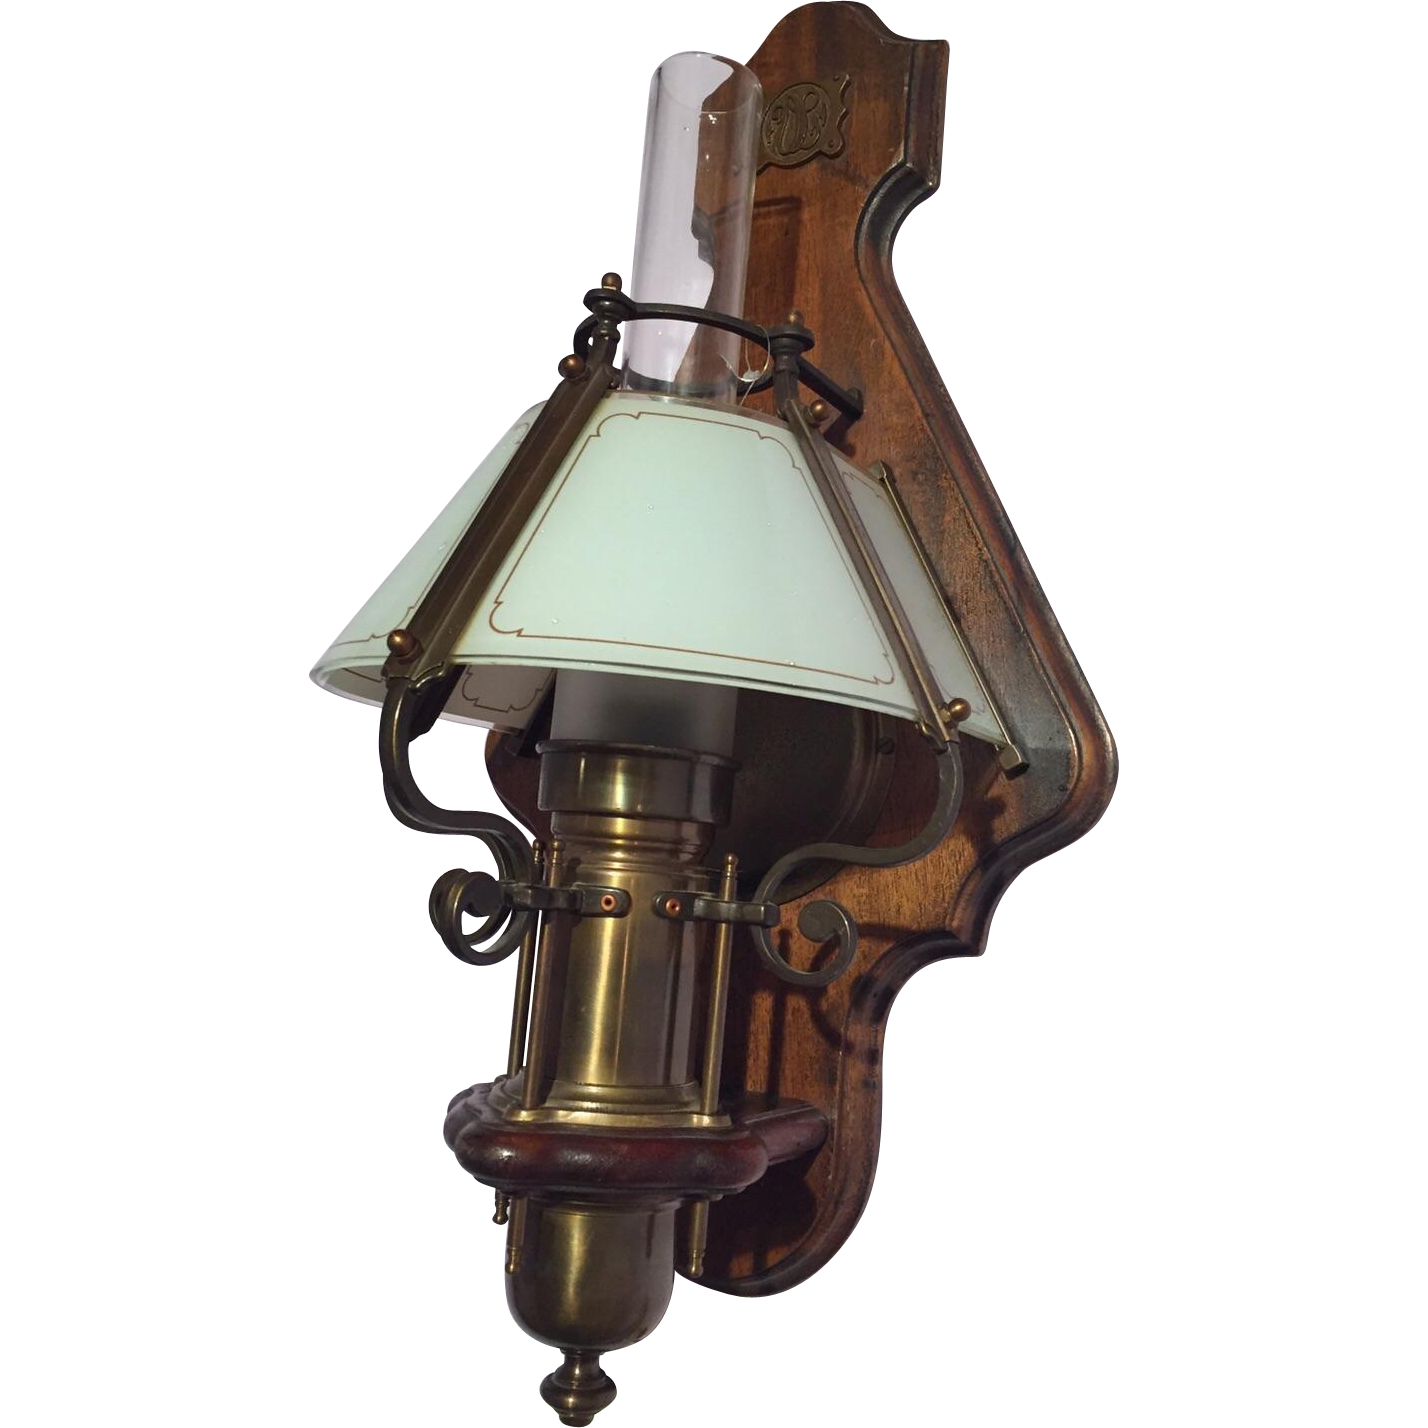 Antique Wood Wall Lamps : Very nice old wooden wall lamp from maisondantique on Ruby Lane